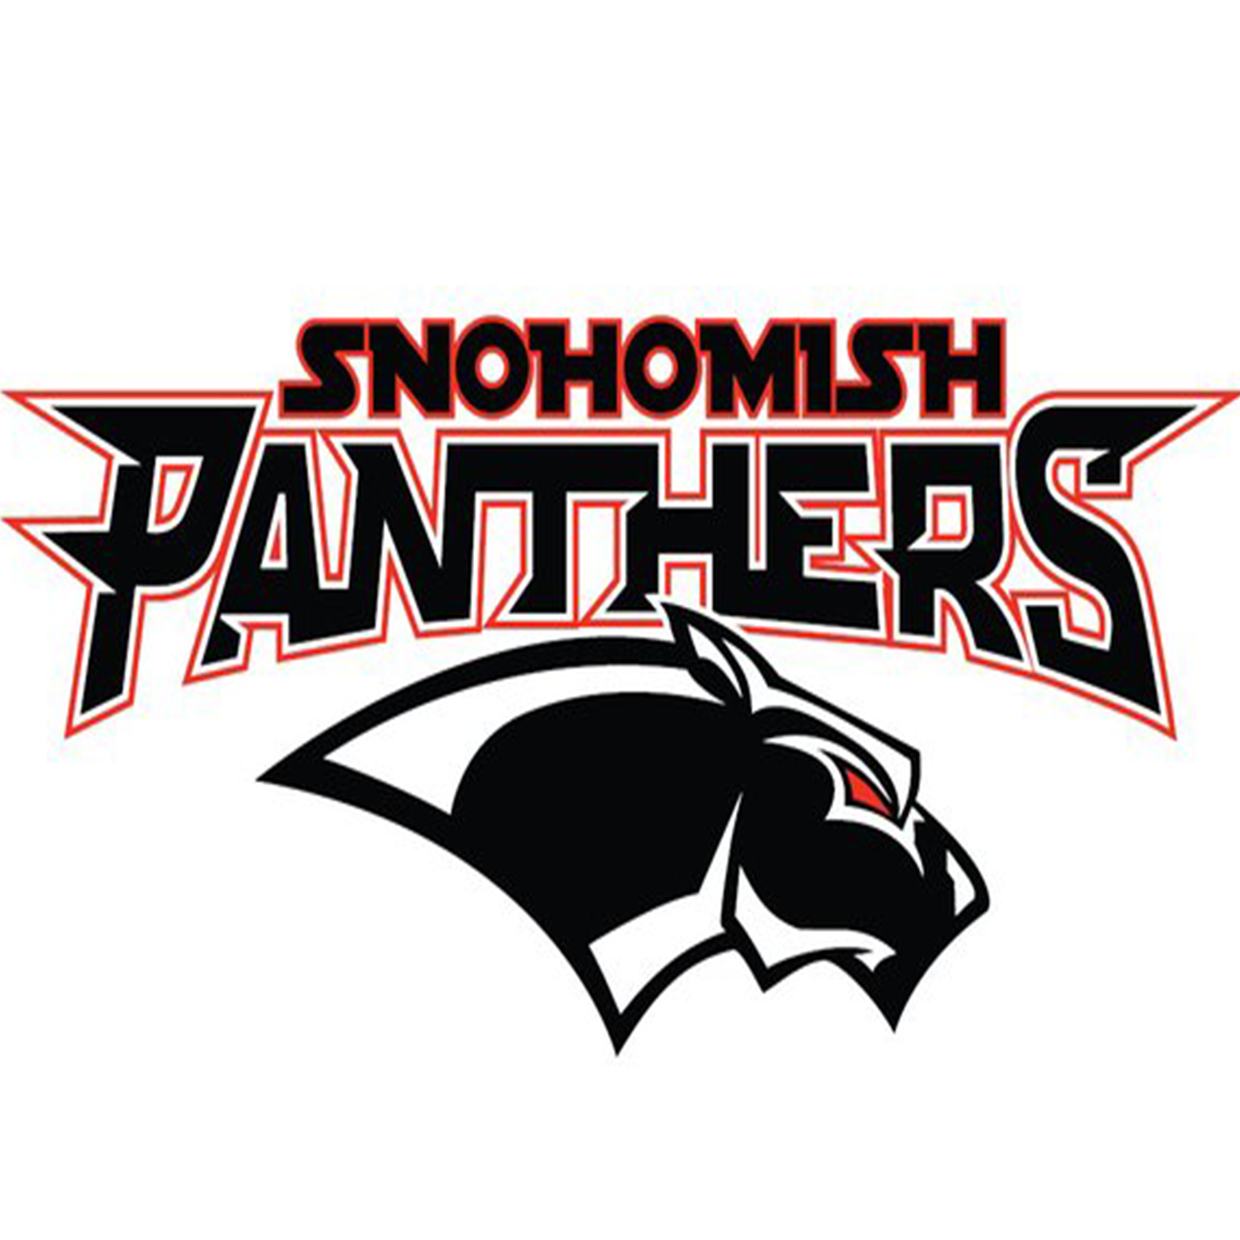 Snohomish Panthers